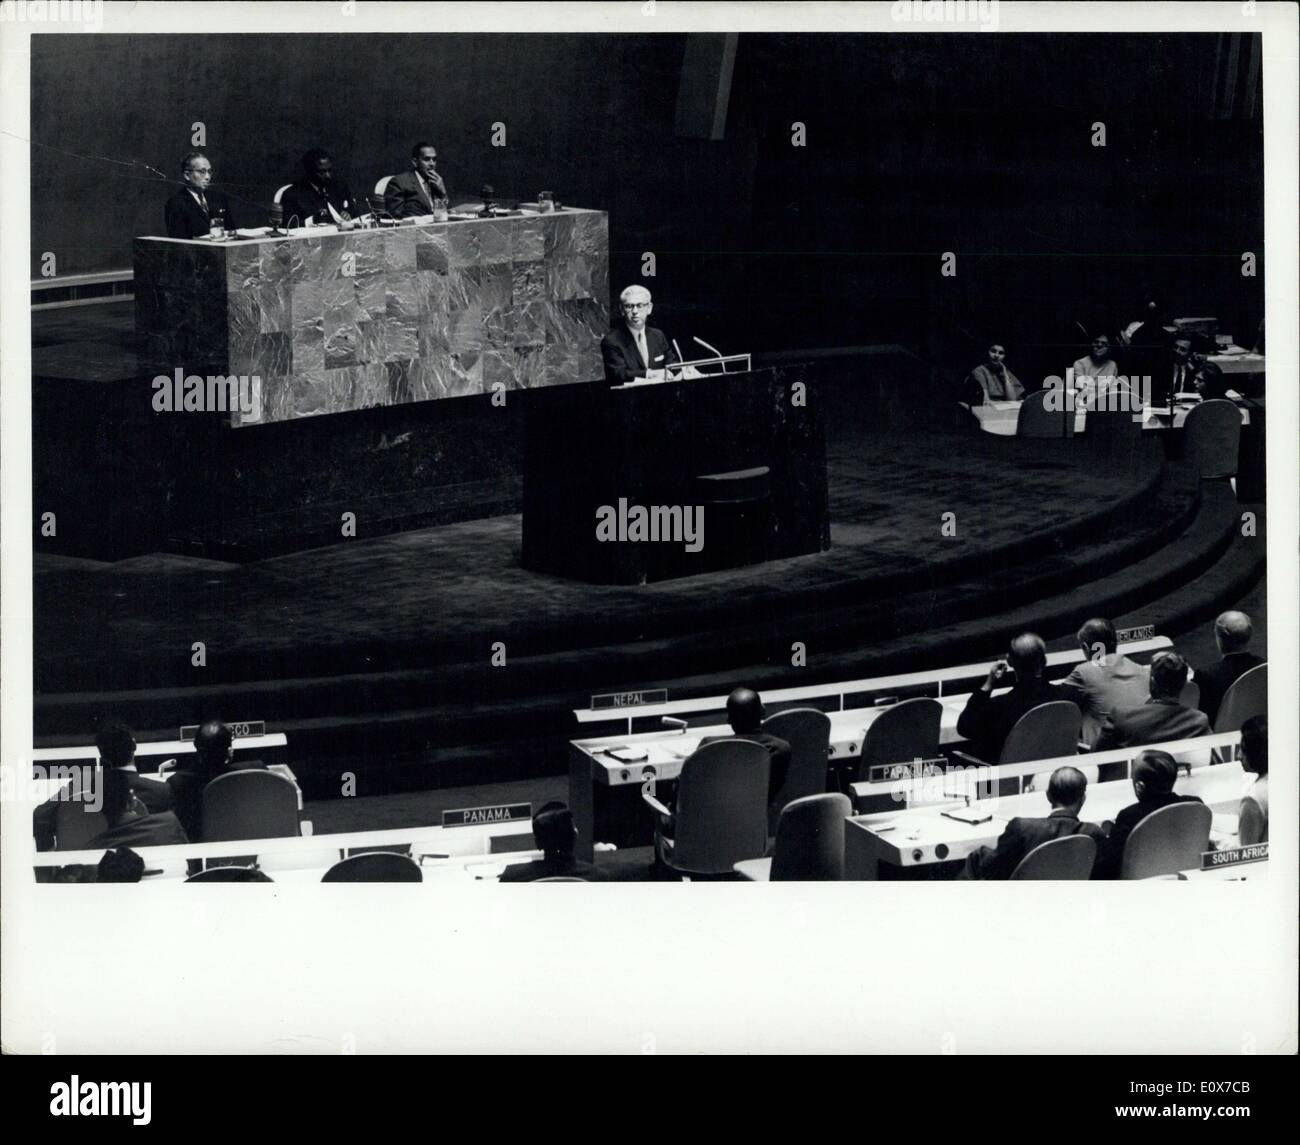 Sep. 01, 1965 - General Assembly Concludes Nineteenth Session: UN 90659, United Nations , New York, 1 September 1964. The General Assembly ended its ninettenth session this afternoon after adoption, without objection, the report of the Special Committee on peace- keeping Operations, which states as the consensus of the committee : (a) That the General Assembly will carry on its work normally in accordance with its rules of procedure ; (b) That the question of the applicability of Article 19 will not be raised with regard to the United Nations emergency force and the United Nations operation - Stock Image